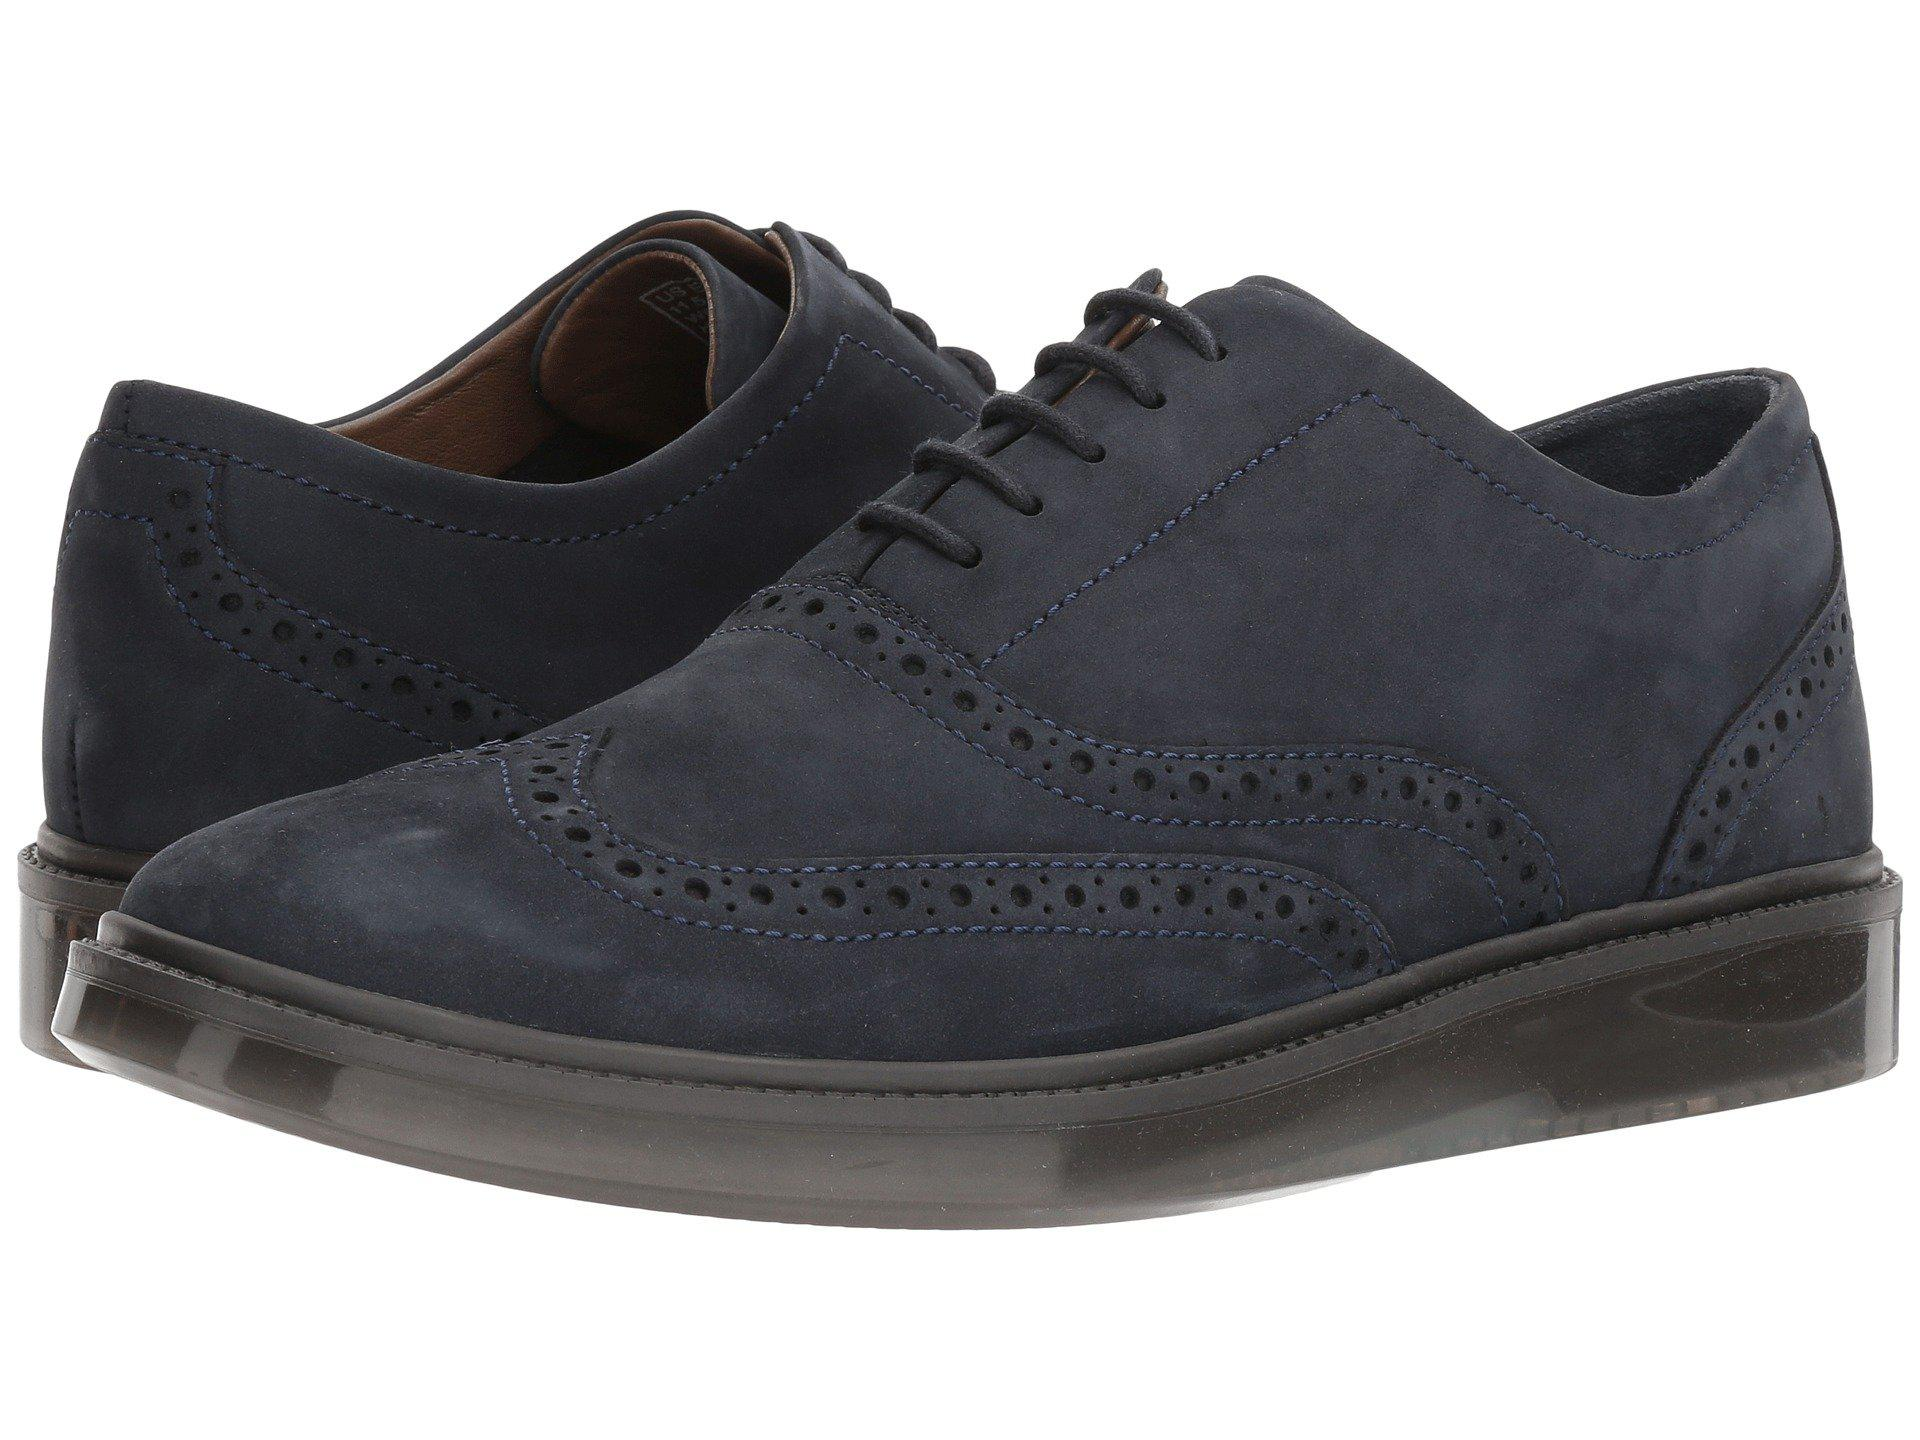 Lyst - Hush Puppies Shiba Brogue Oxford in Blue for Men - Save 16% 241ecb06b0